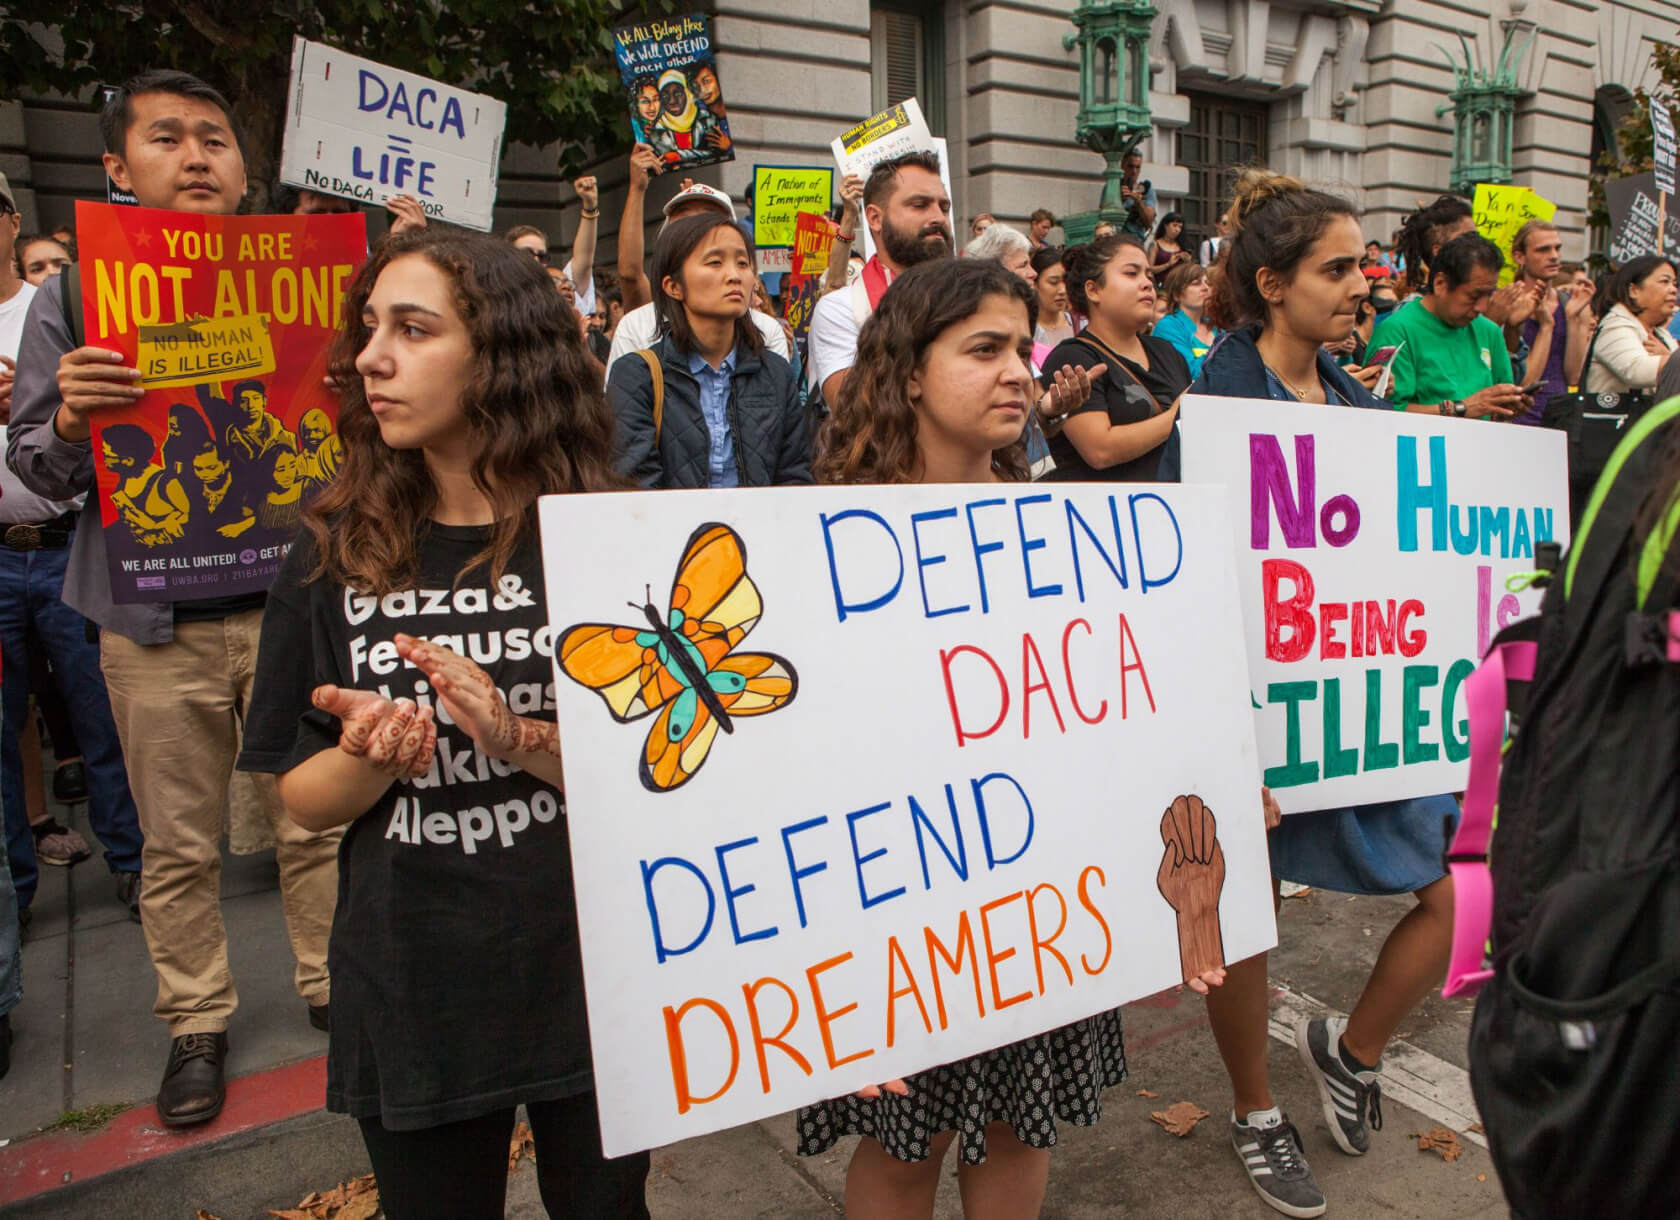 Cook, Zuckerberg, Bezos and over 100 other CEOs sign letter urging Congress to keep DACA program